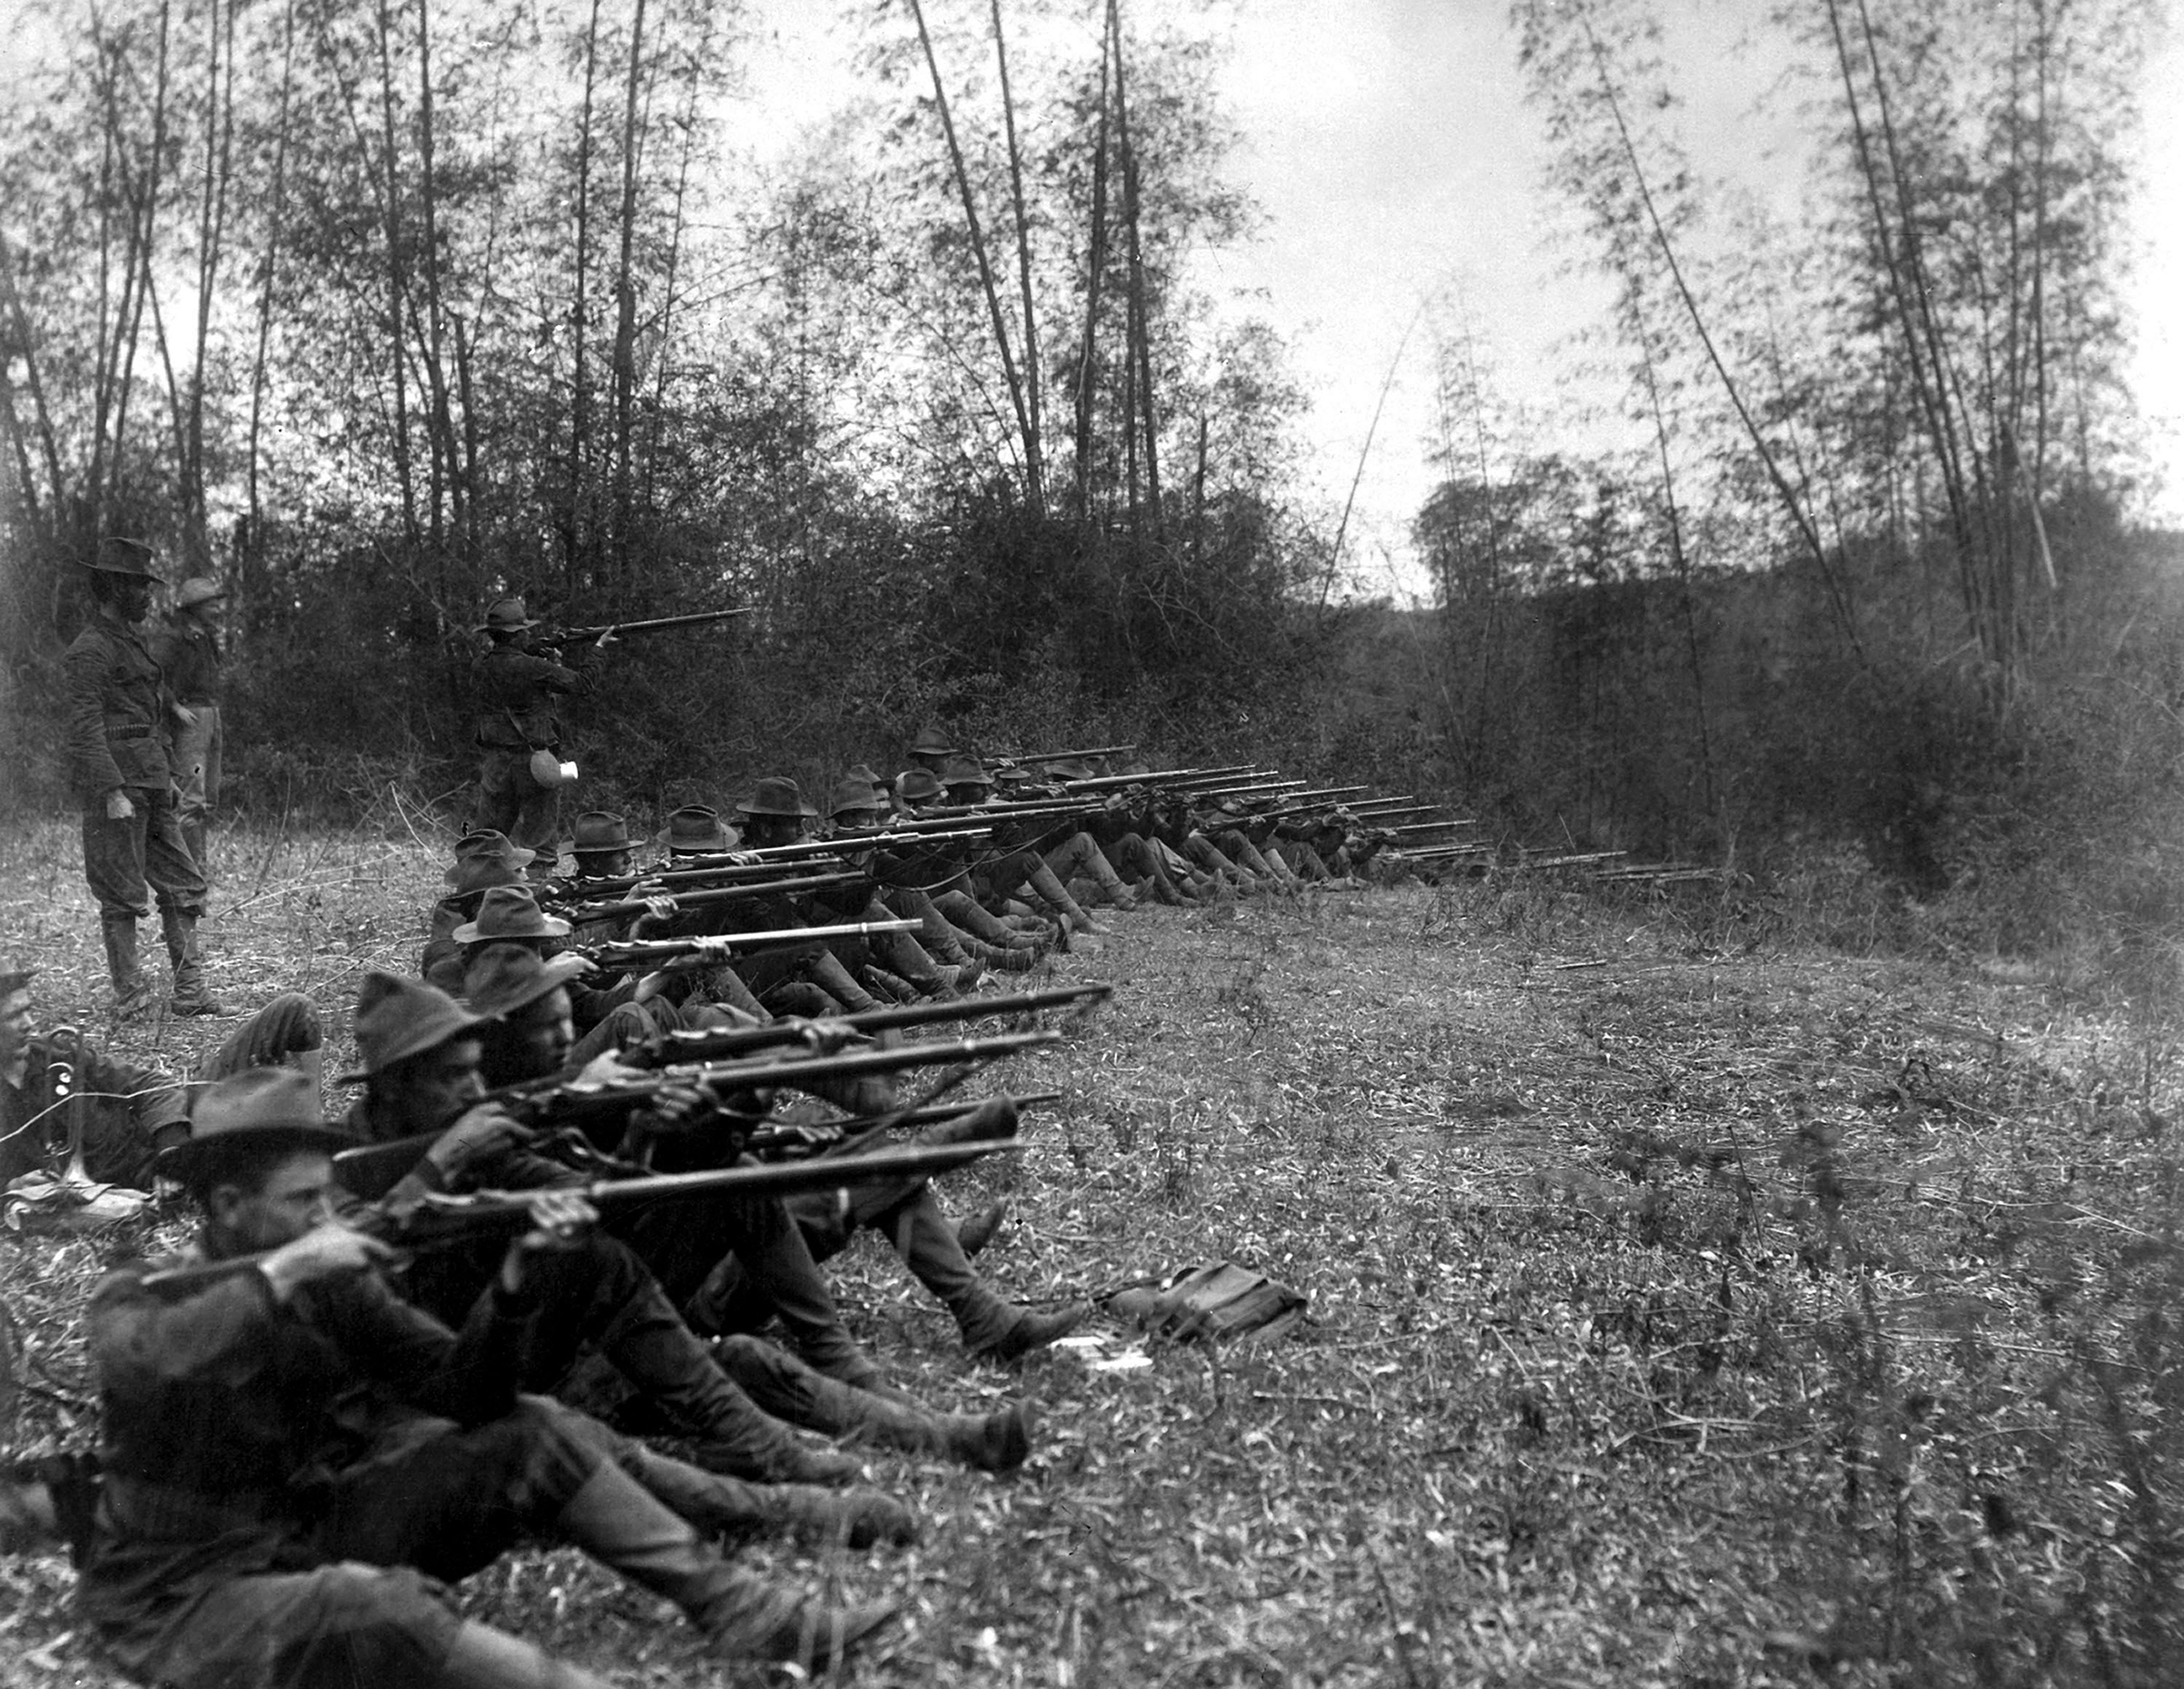 Oregon Volunteer Infantry shooting while on the firing line, in the vicinity of Pasig, in the Philippines, during the Philippine-American War, March 1899.